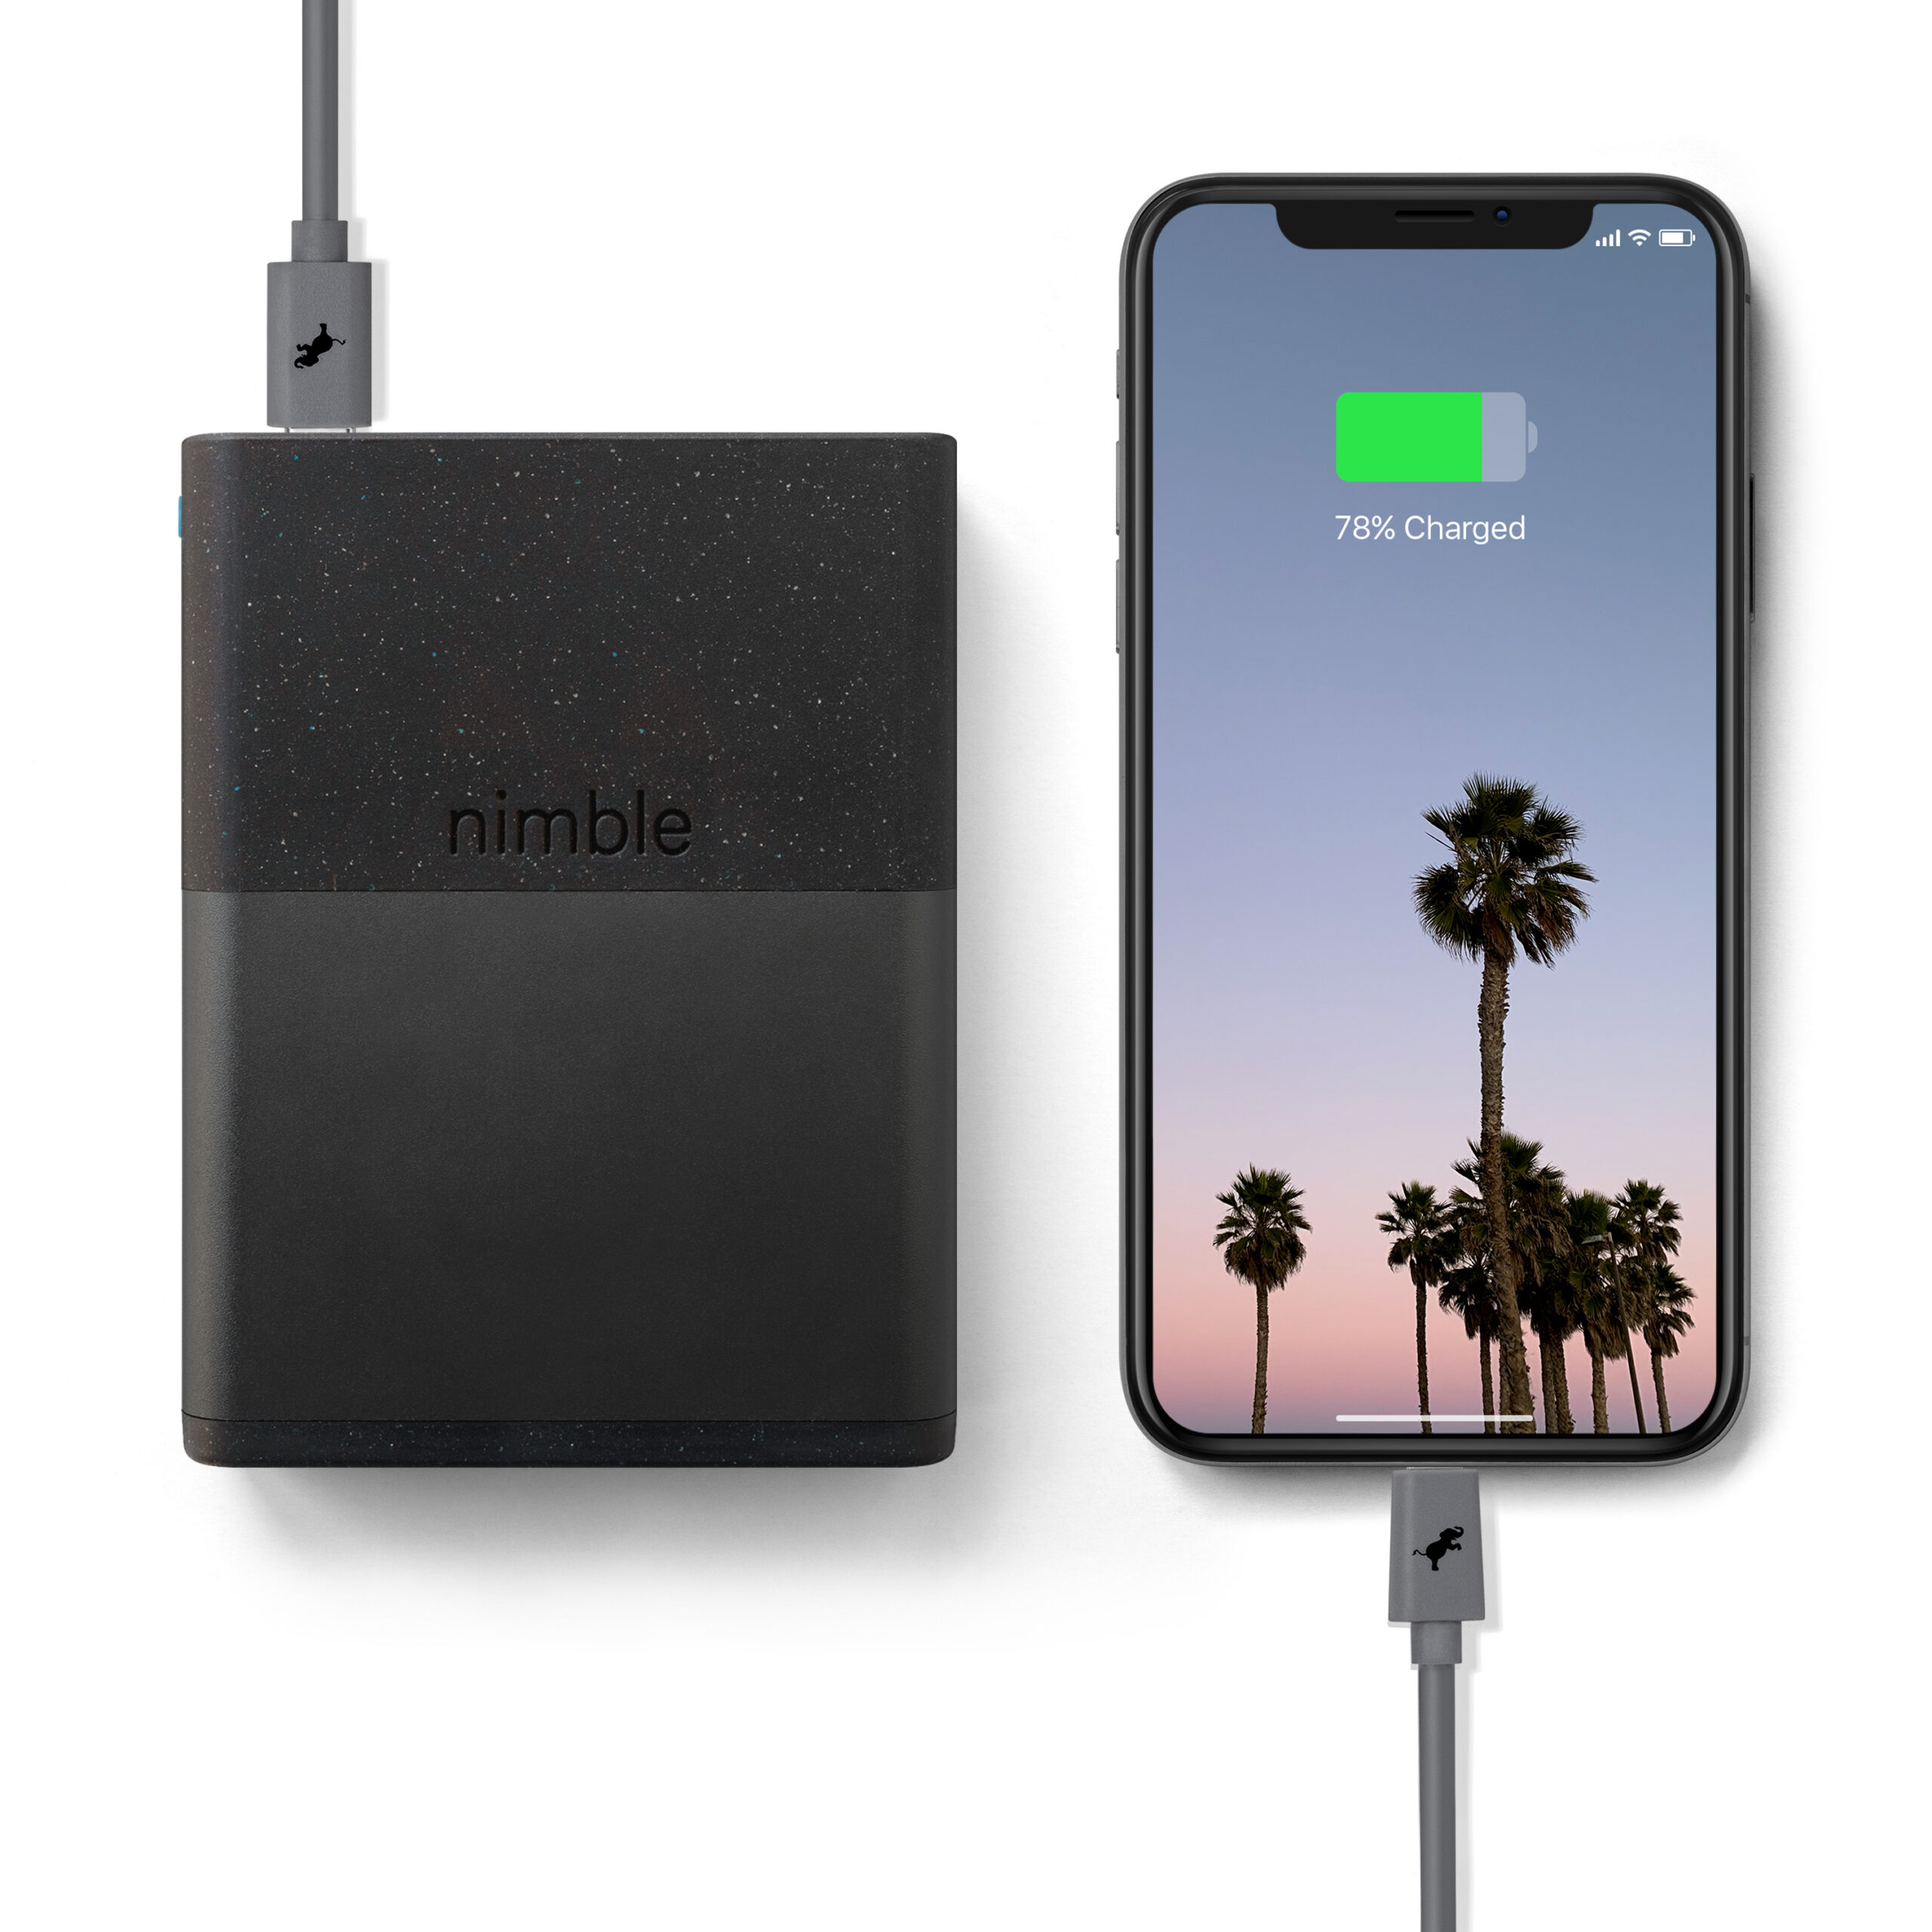 Nimble Five Day Fast Portable Charger